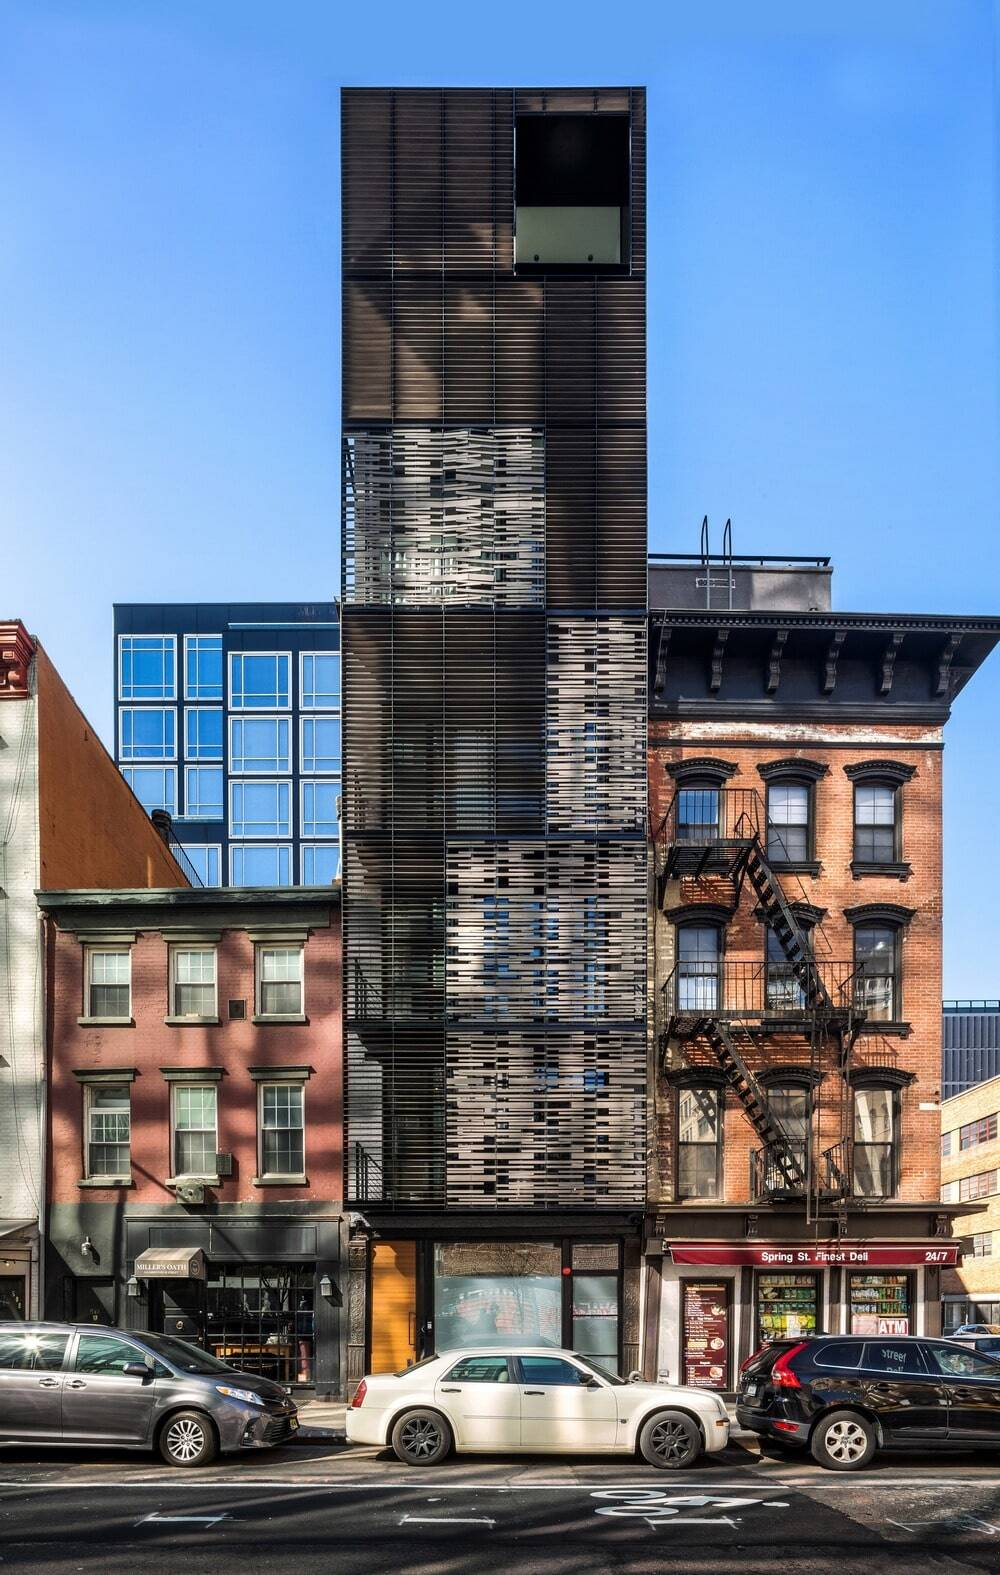 Archi-Tectonics Converted an Industrial Structure in SoHo into an 8-Story Family Home